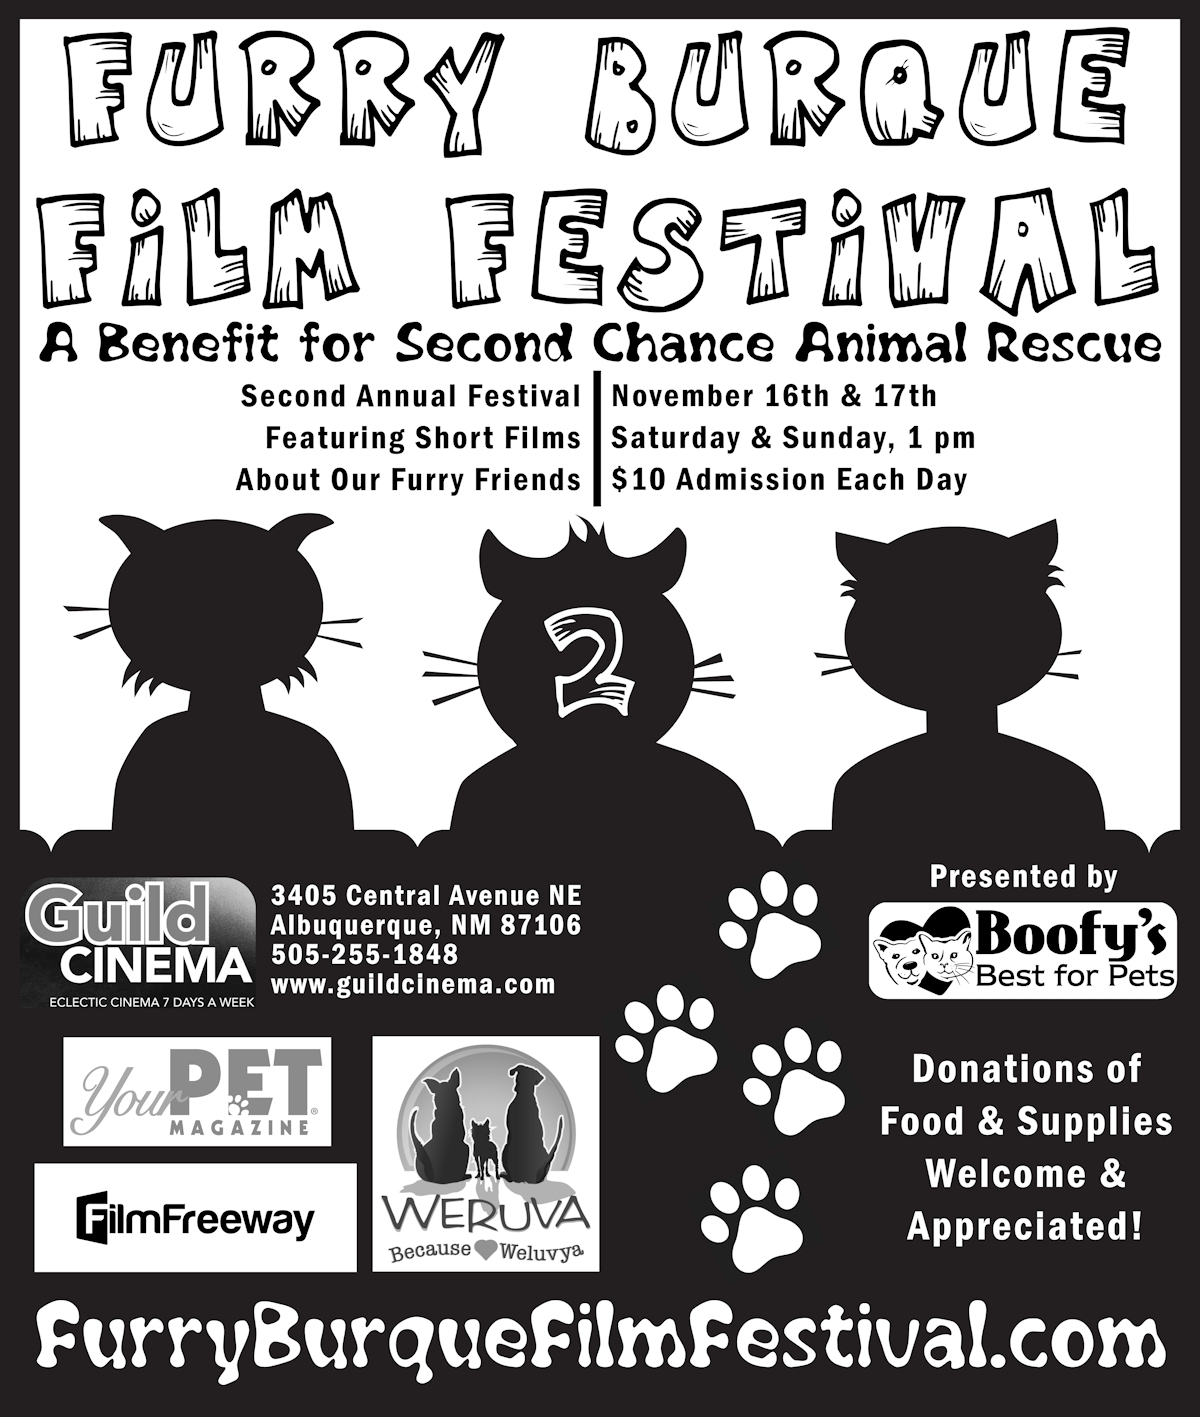 2nd Annual Furry Burque Film Festival Event Poster